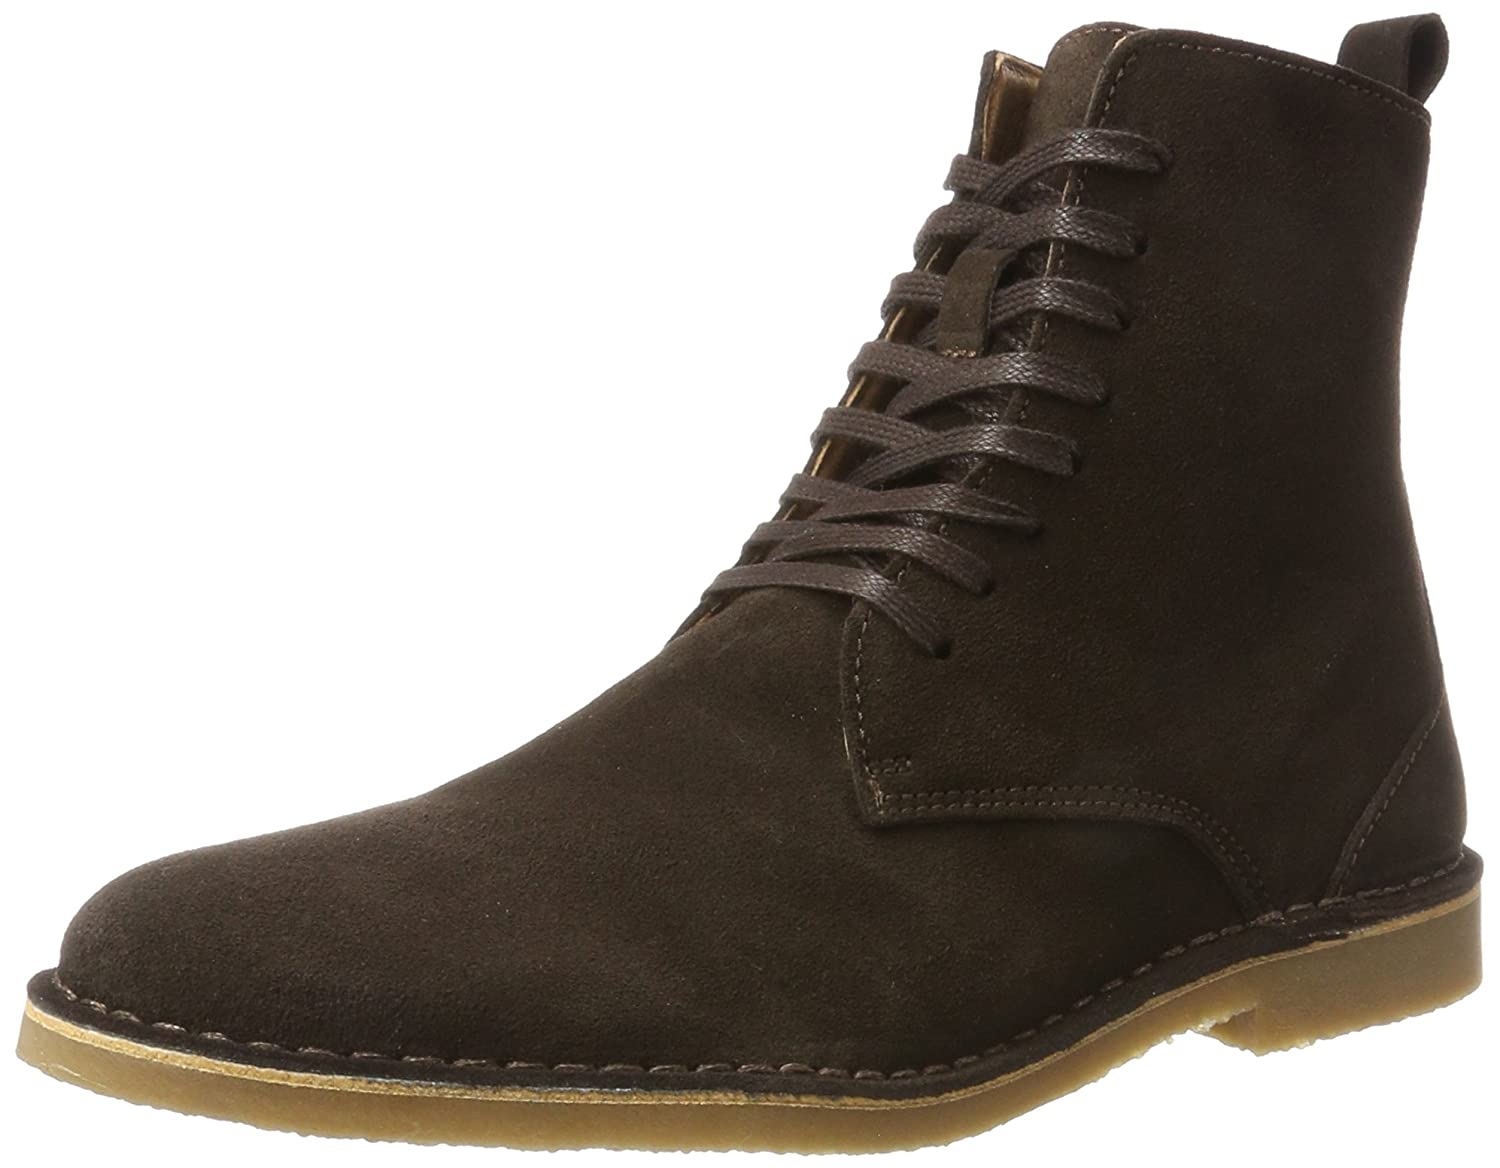 TALLA 43 EU. Selected Shhroyce High Suede Boot - Botines Hombre